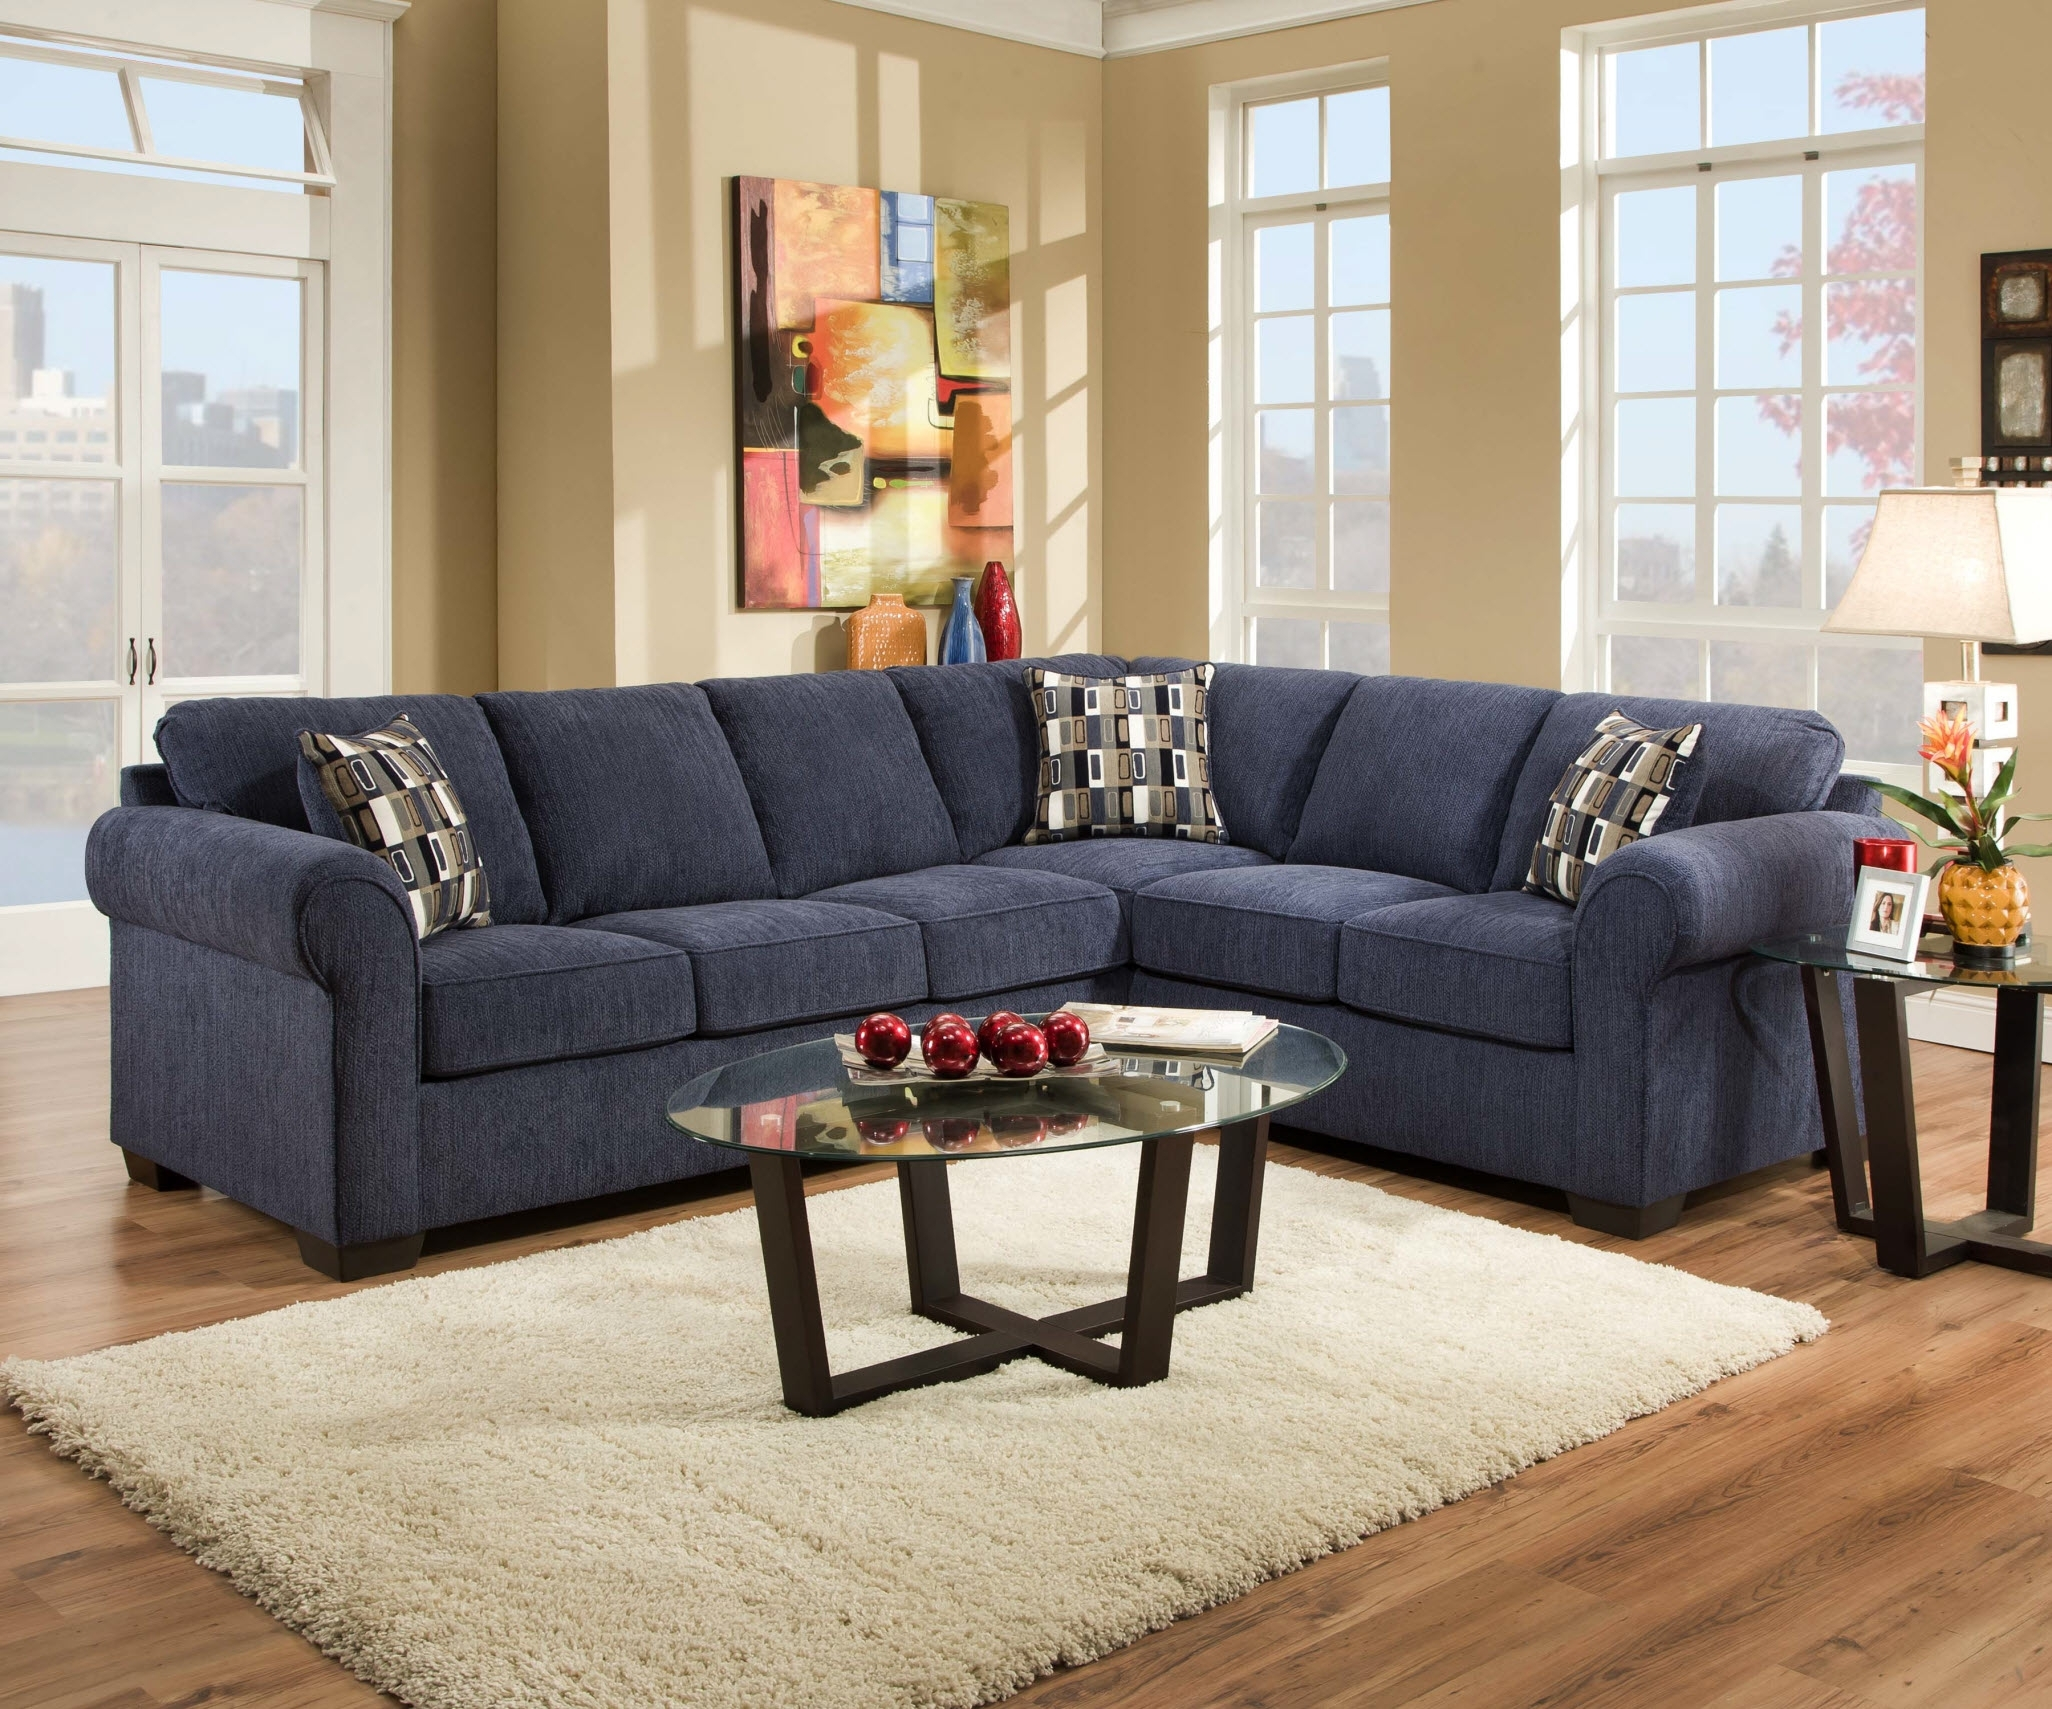 Beautiful Blue Microfiber Sectional Sofa 81 In Sectional Sofas with regard to Ottawa Sectional Sofas (Image 2 of 10)